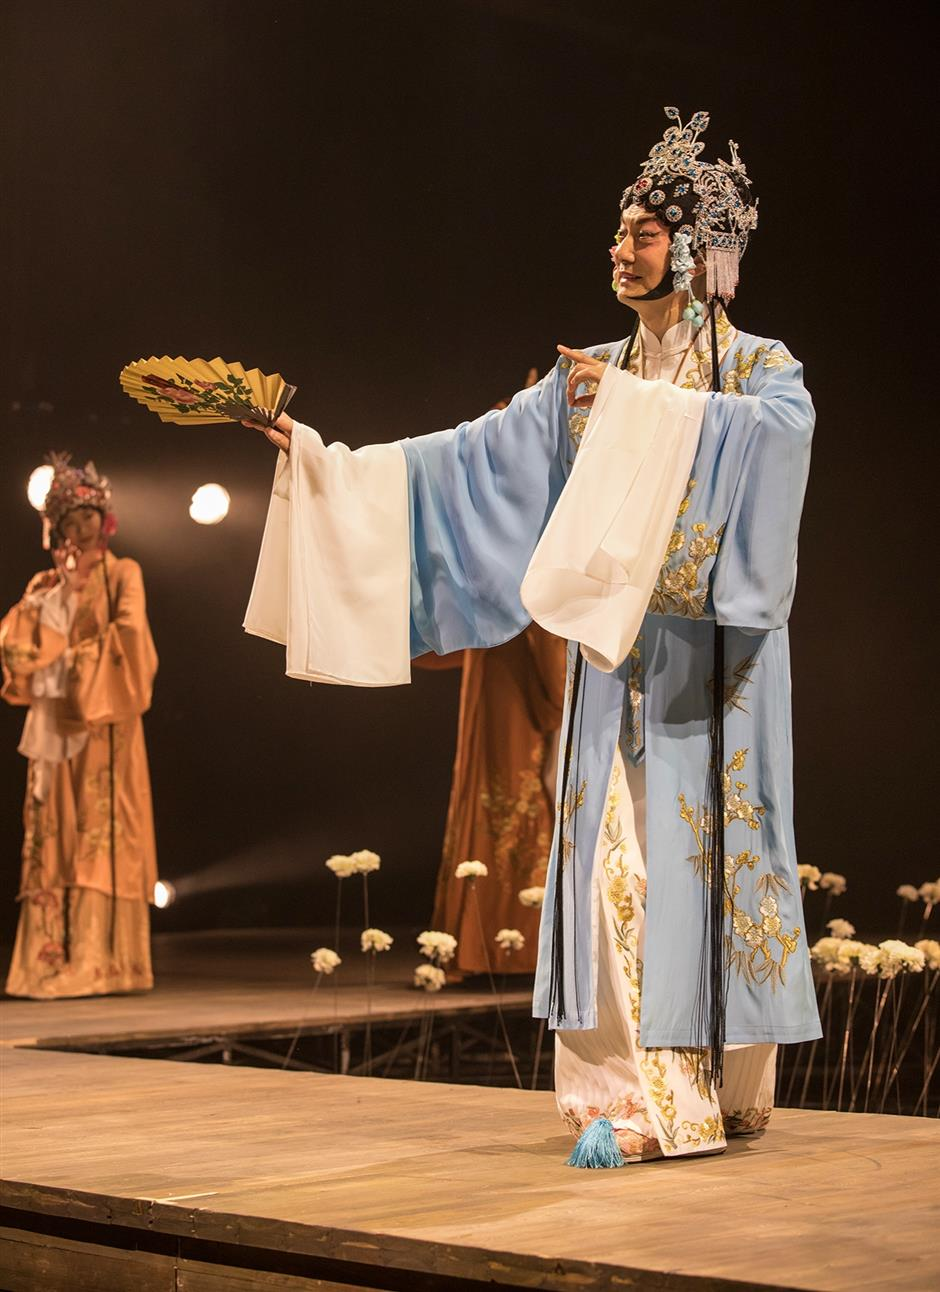 'Lost Opera' returns to the stage